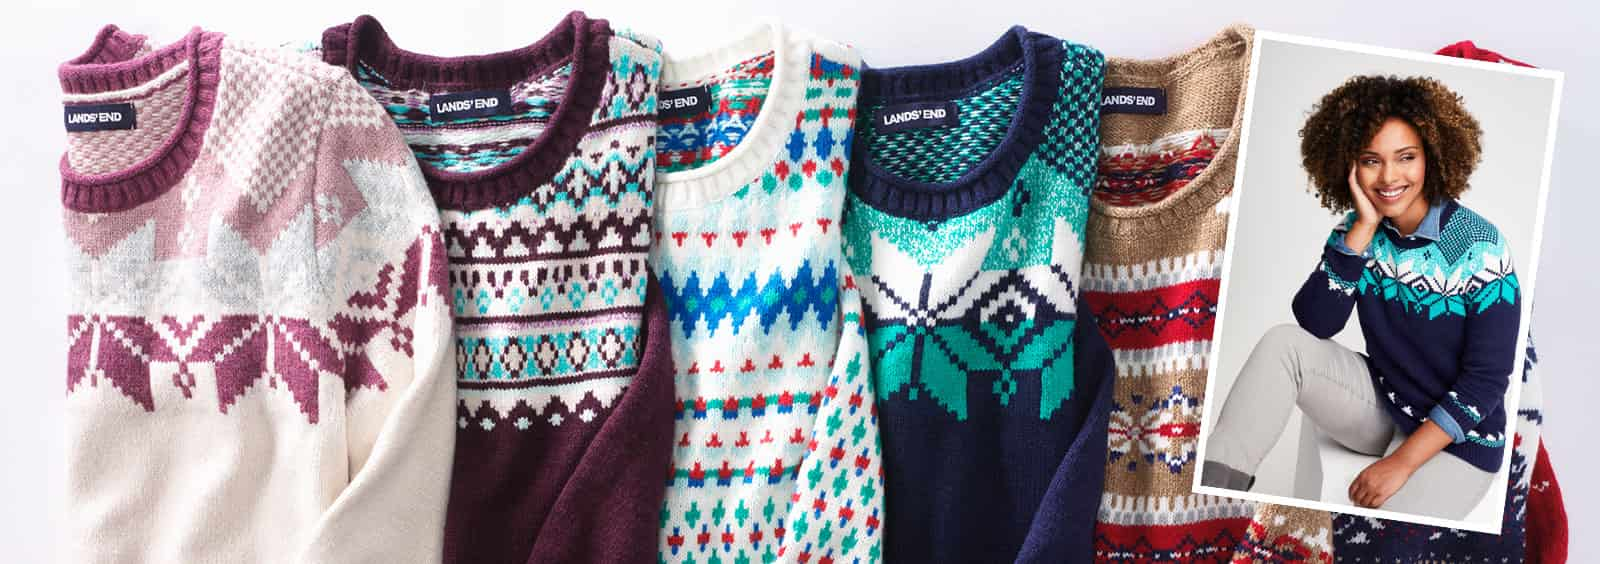 Best Ways to Style Your Holiday Party Sweaters